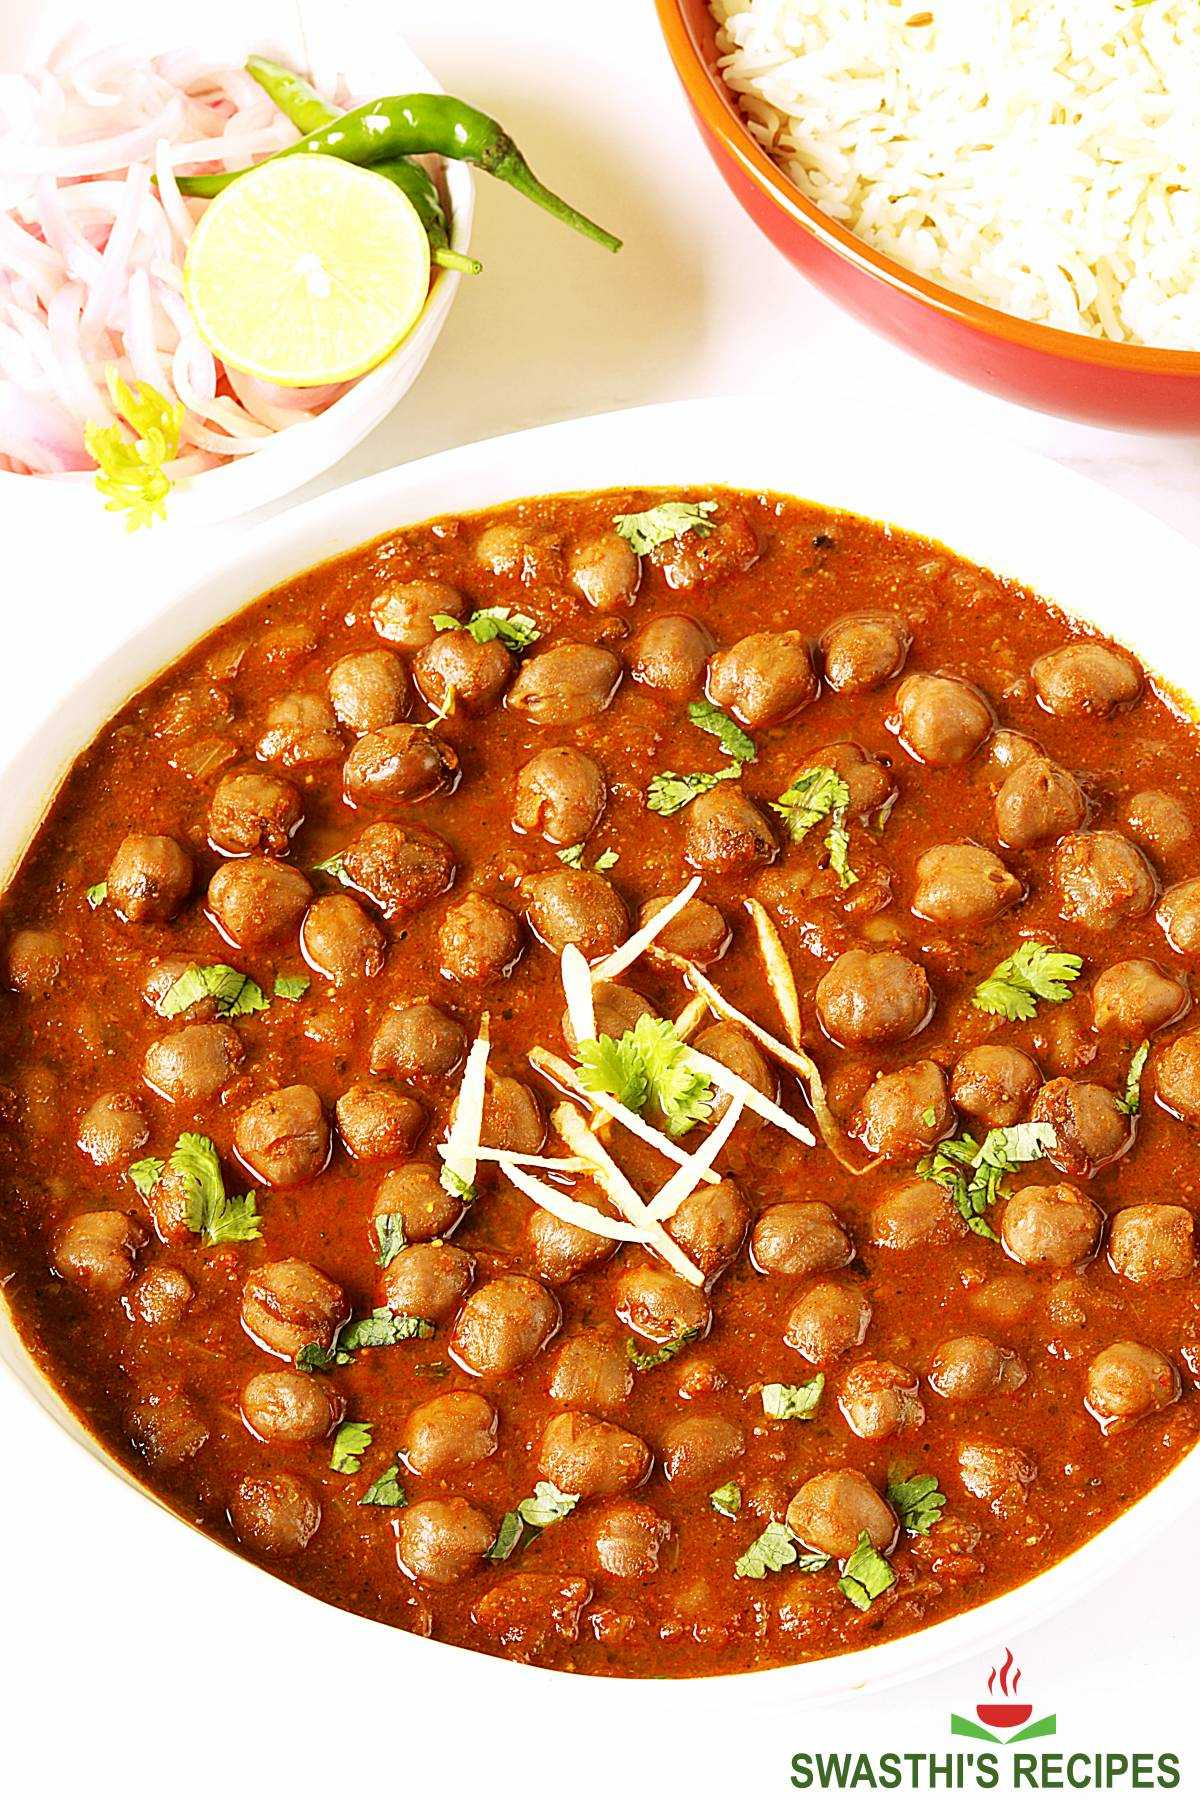 punjabi chole cooked with spices and herbs